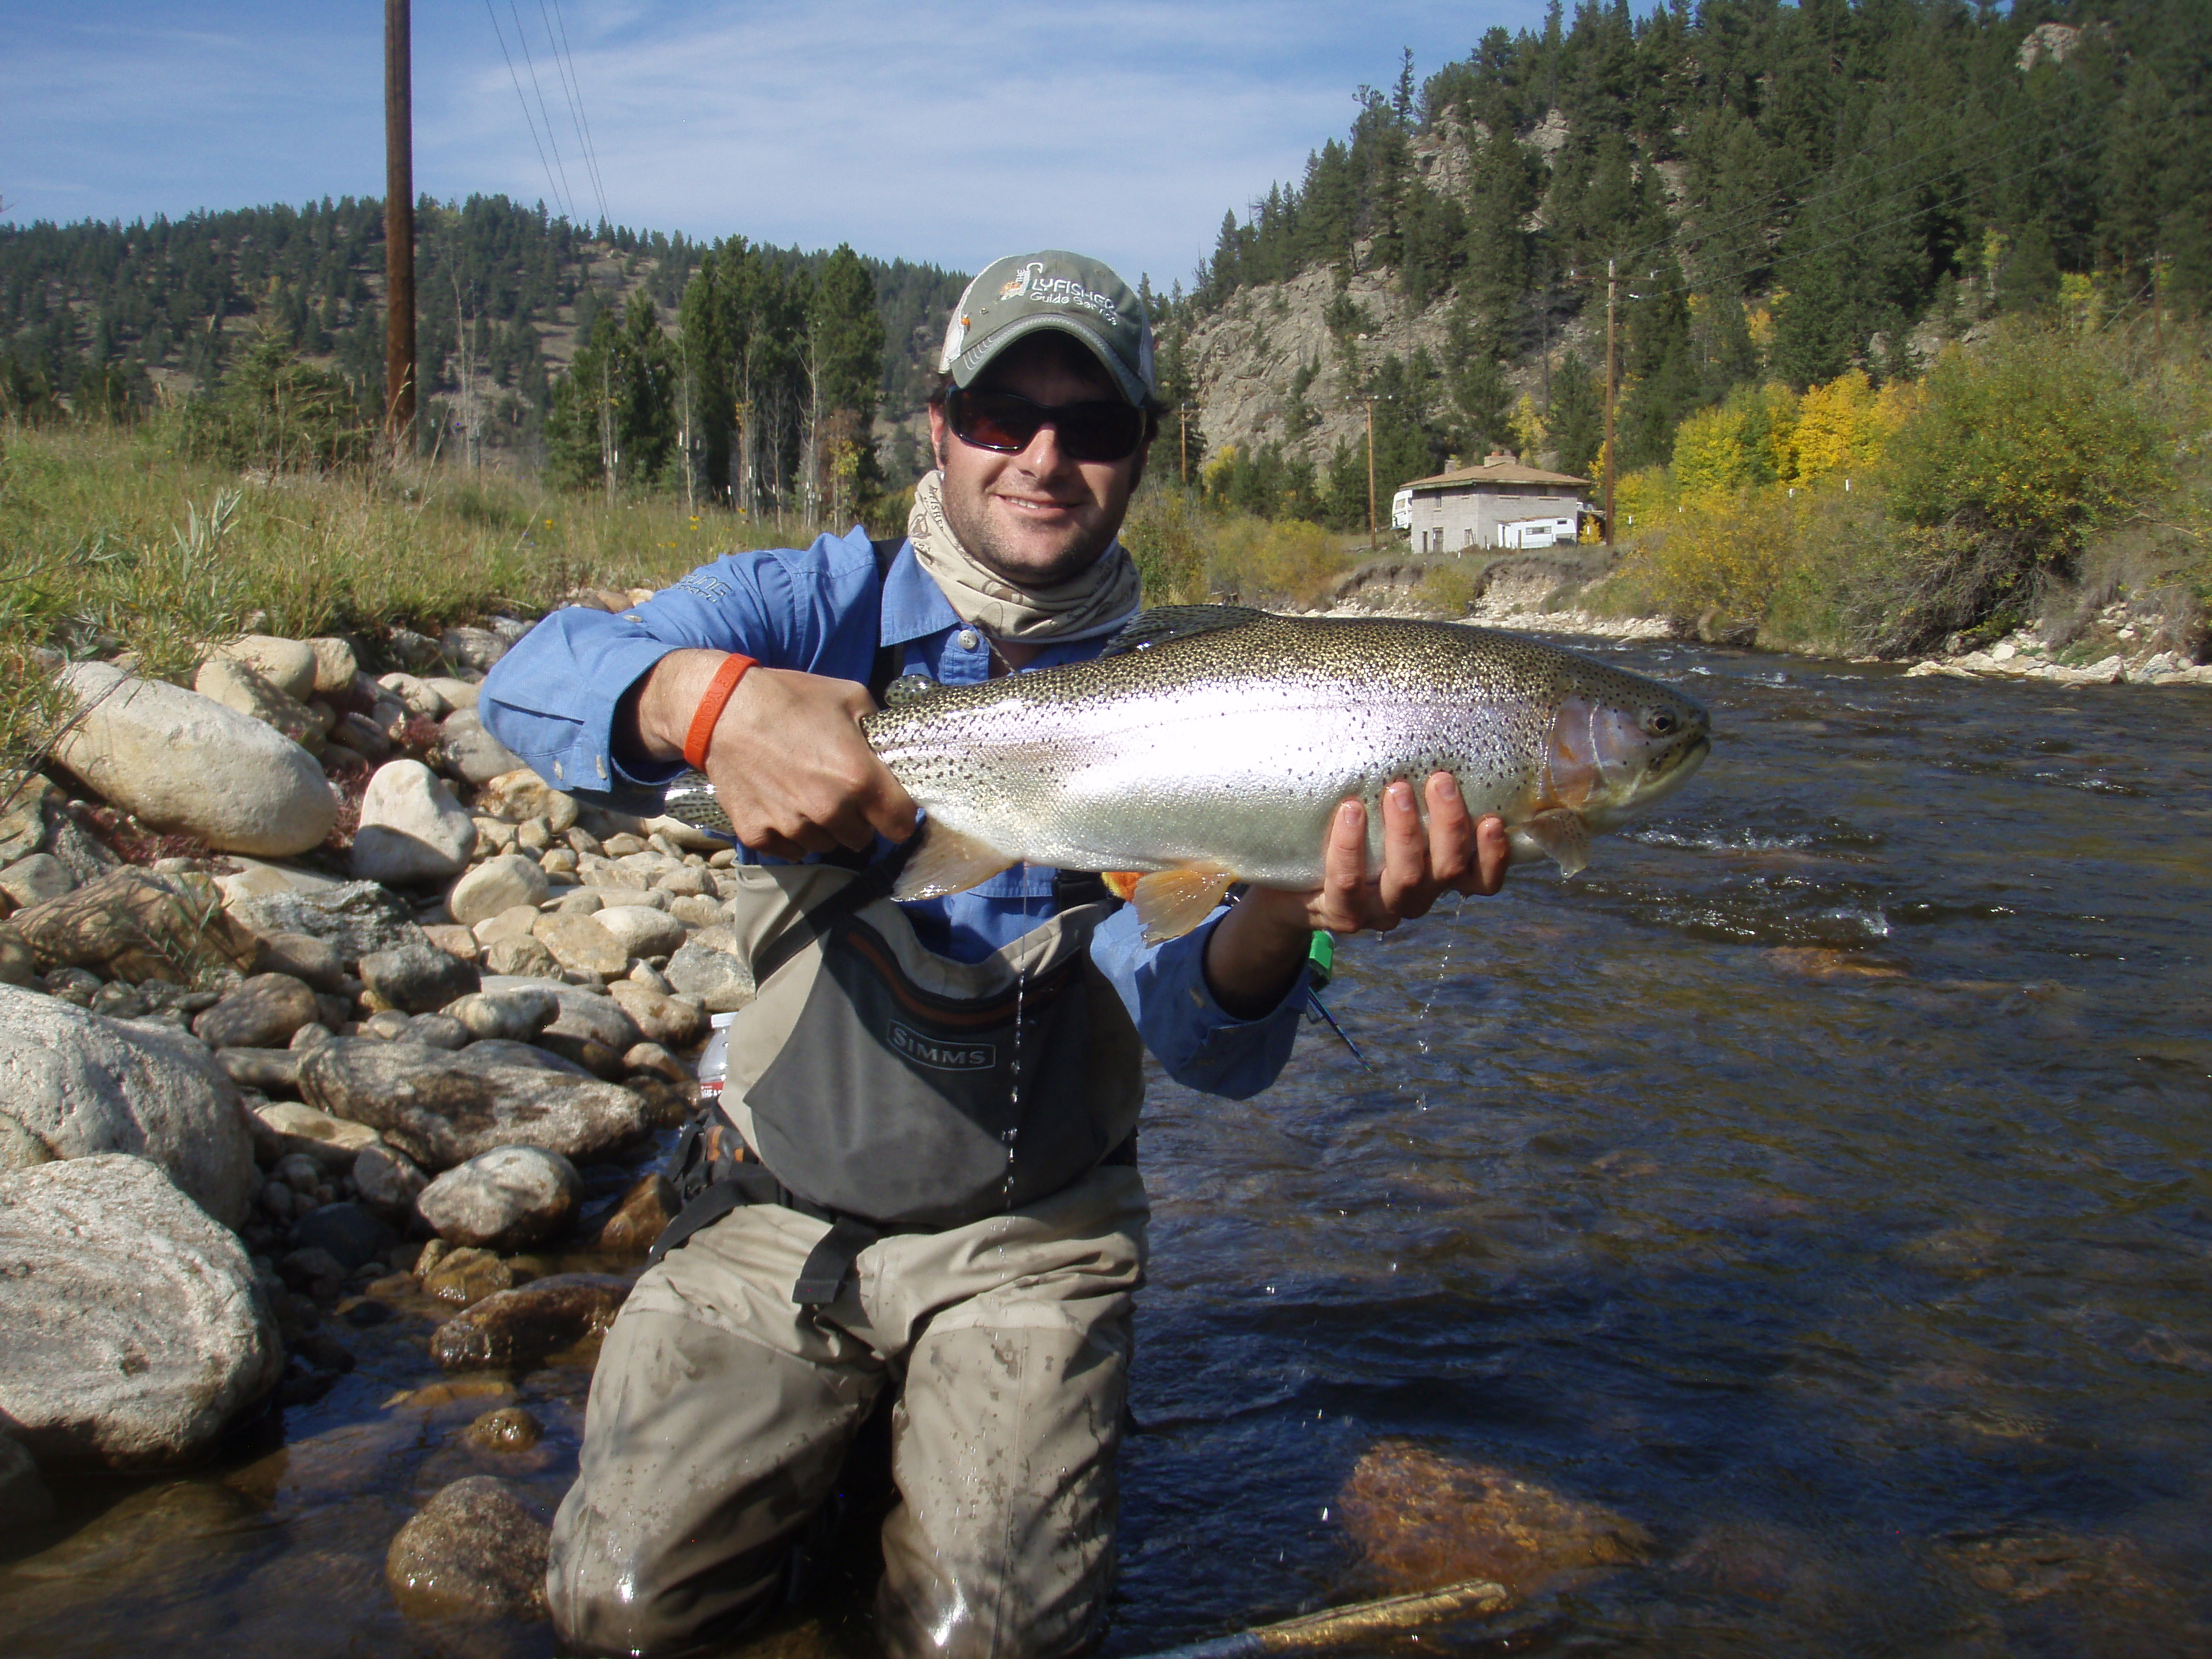 Colorado fly fishing reports guided fishing trip report for Current fishing report